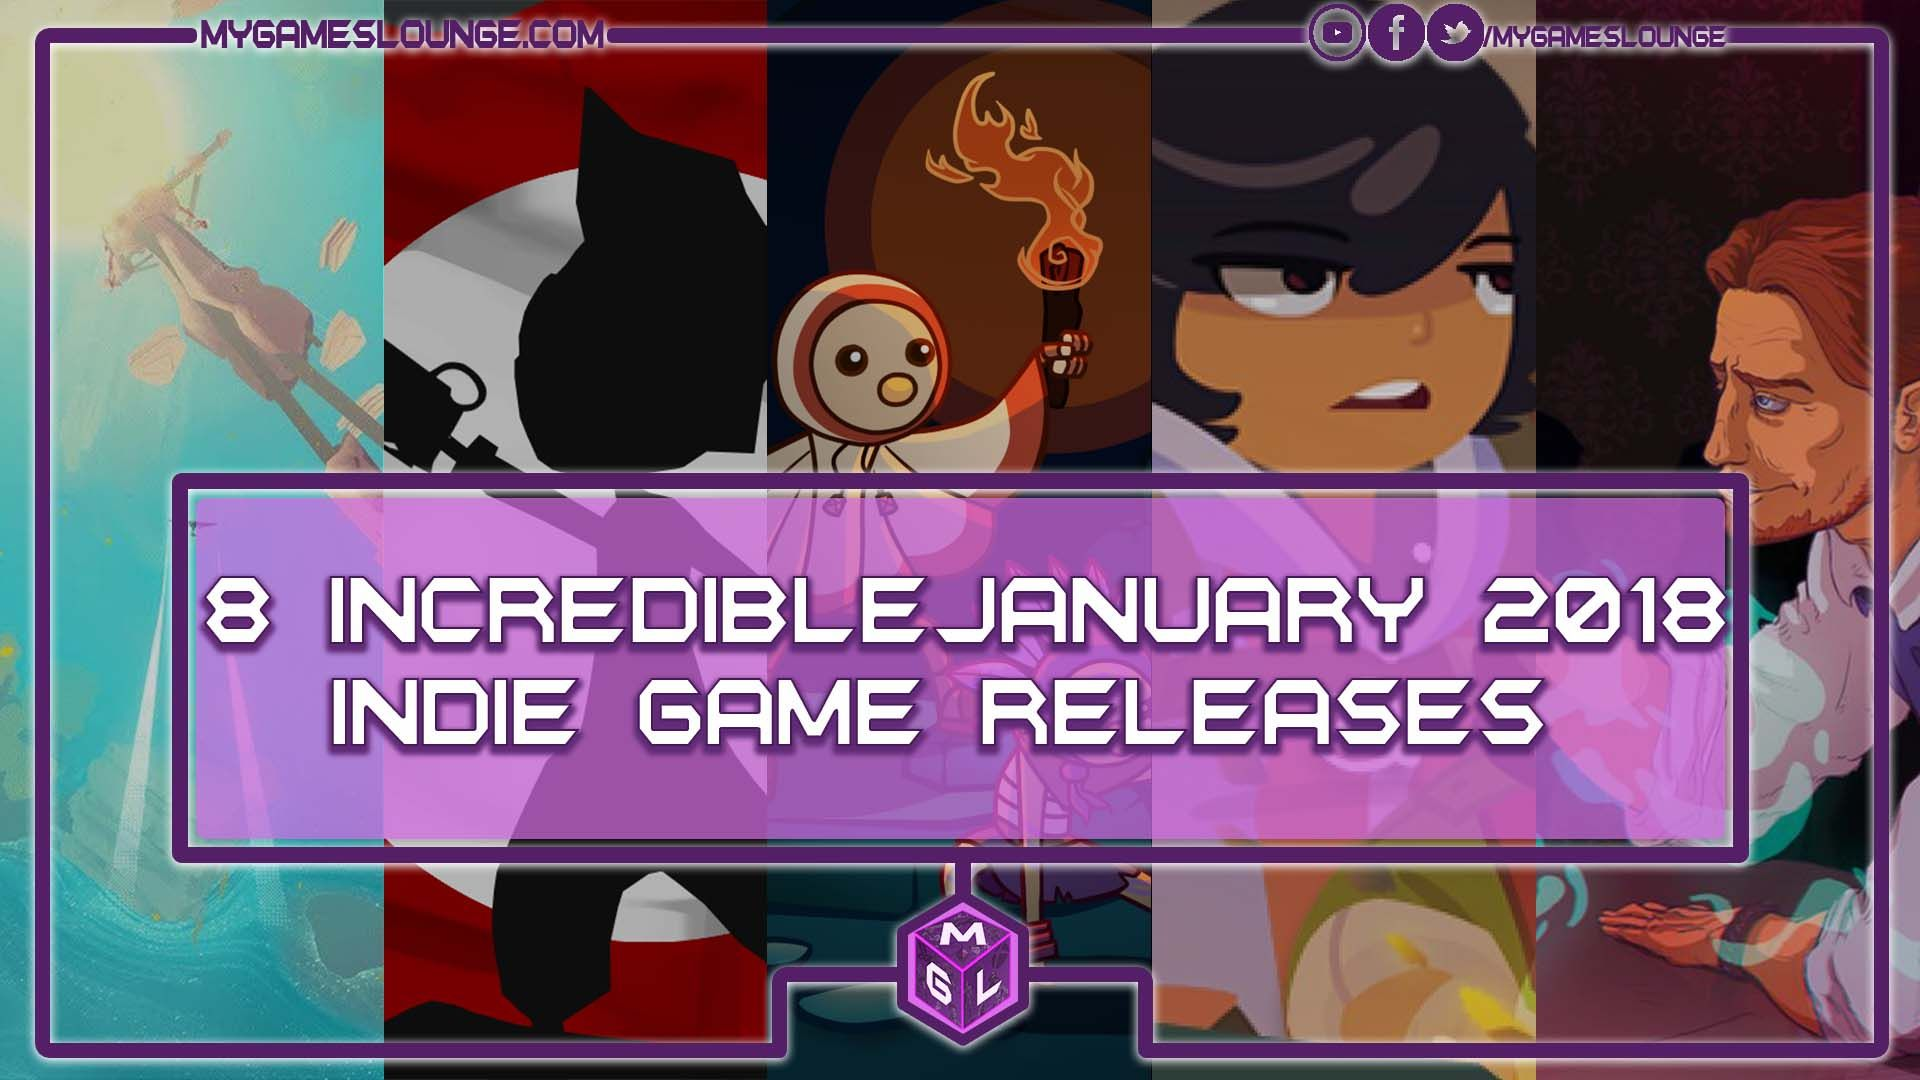 8 Incredible January 2018 Indie Games Releases (PS4, XB1